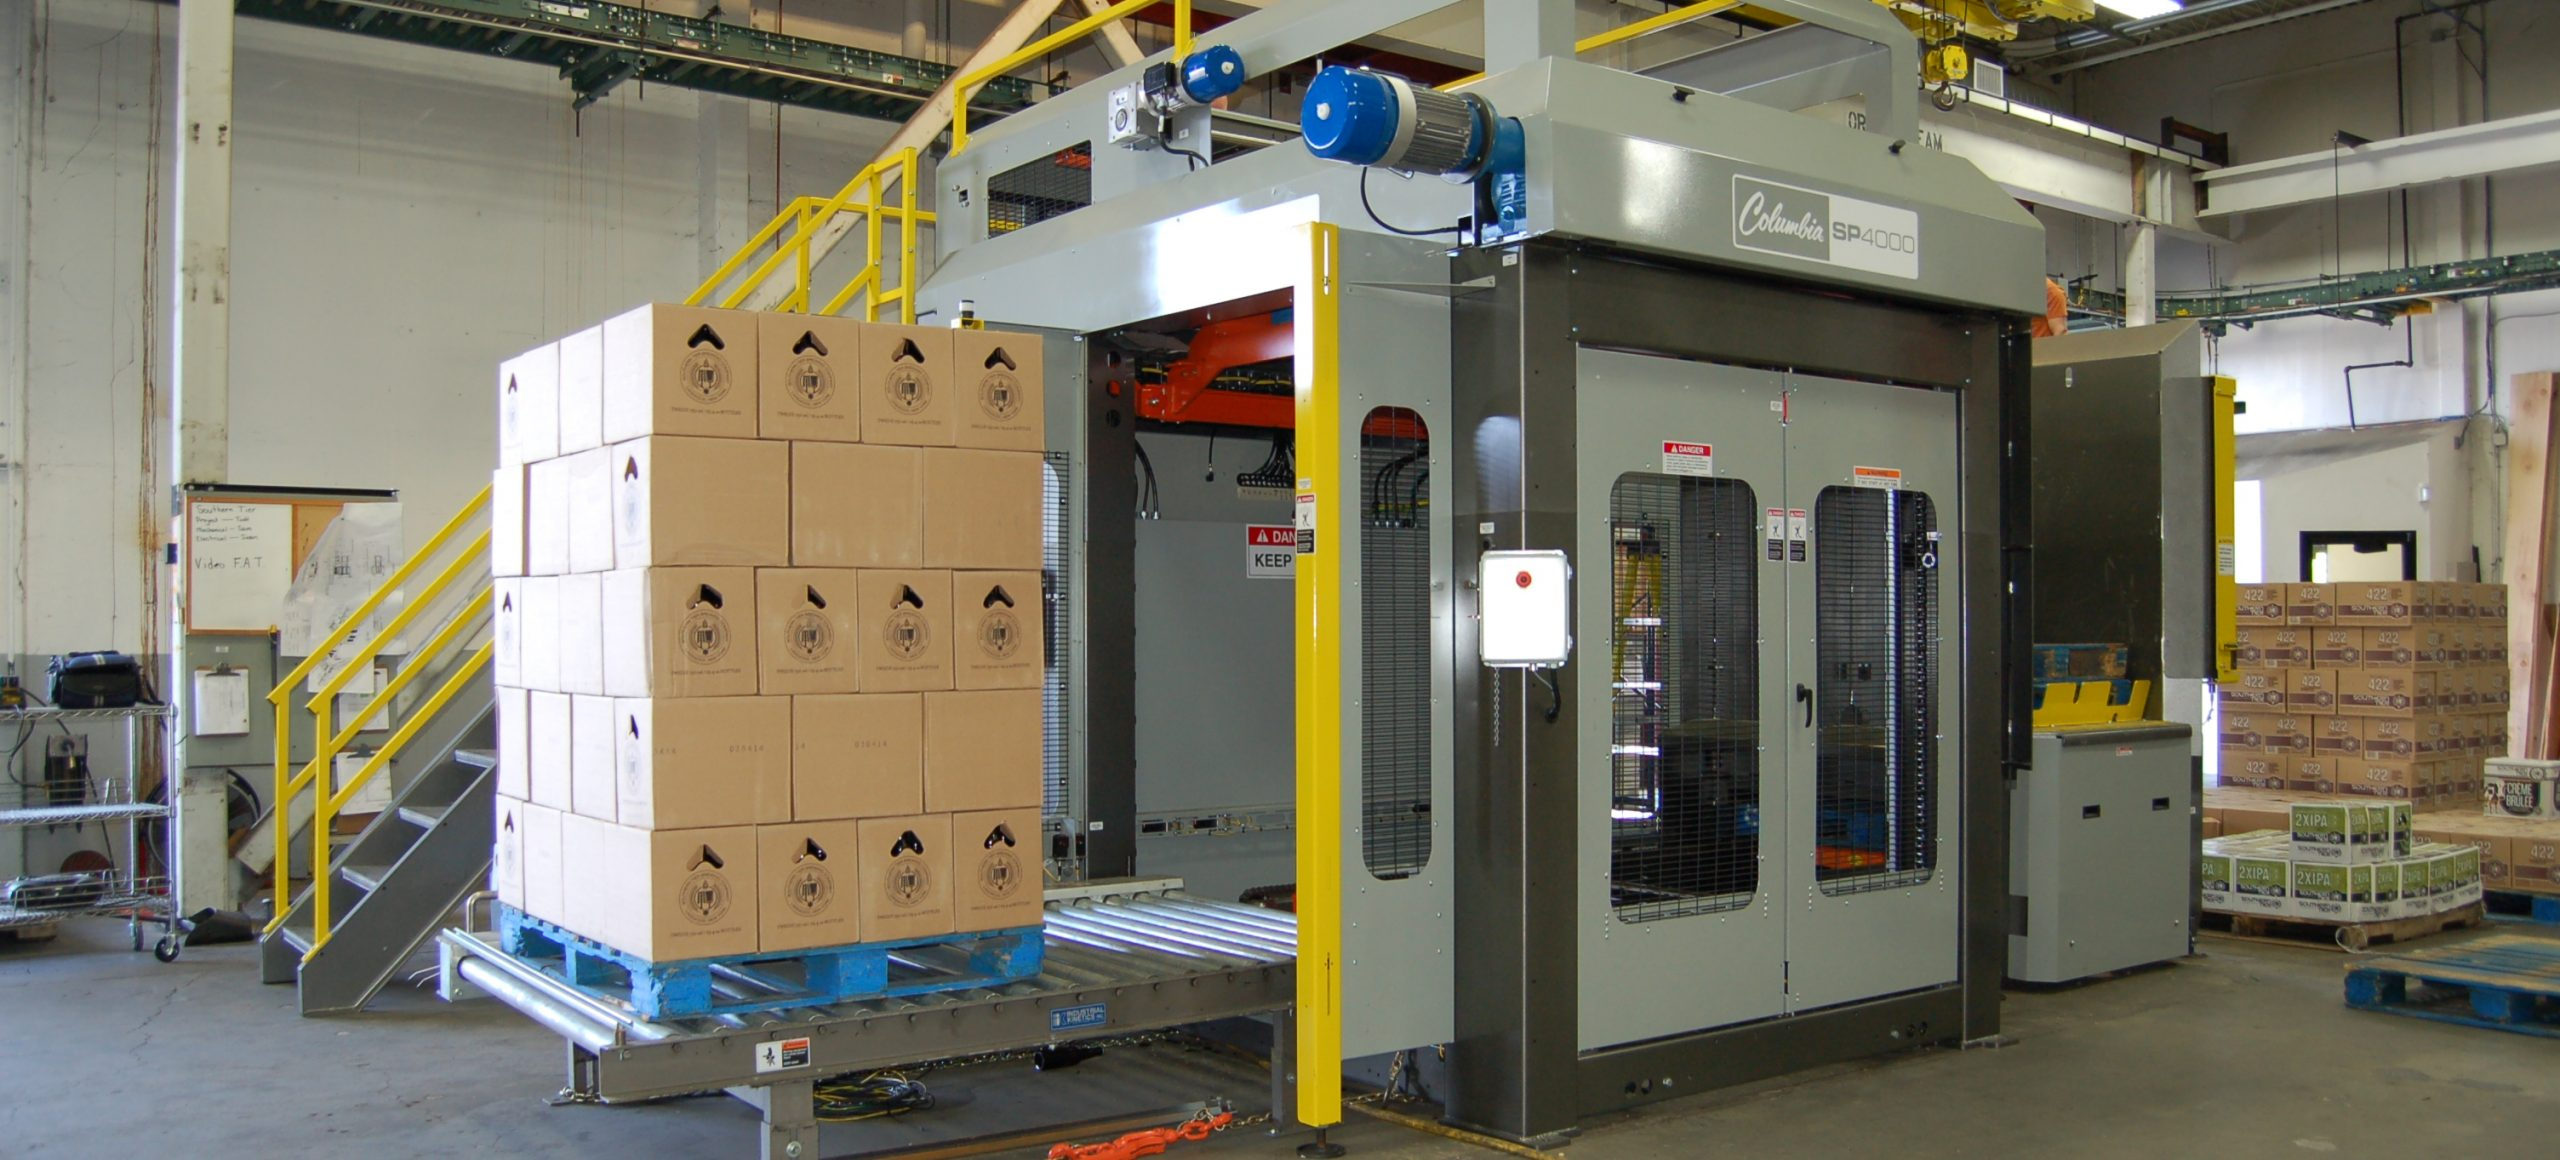 Image of a SP400 high level palletizer.